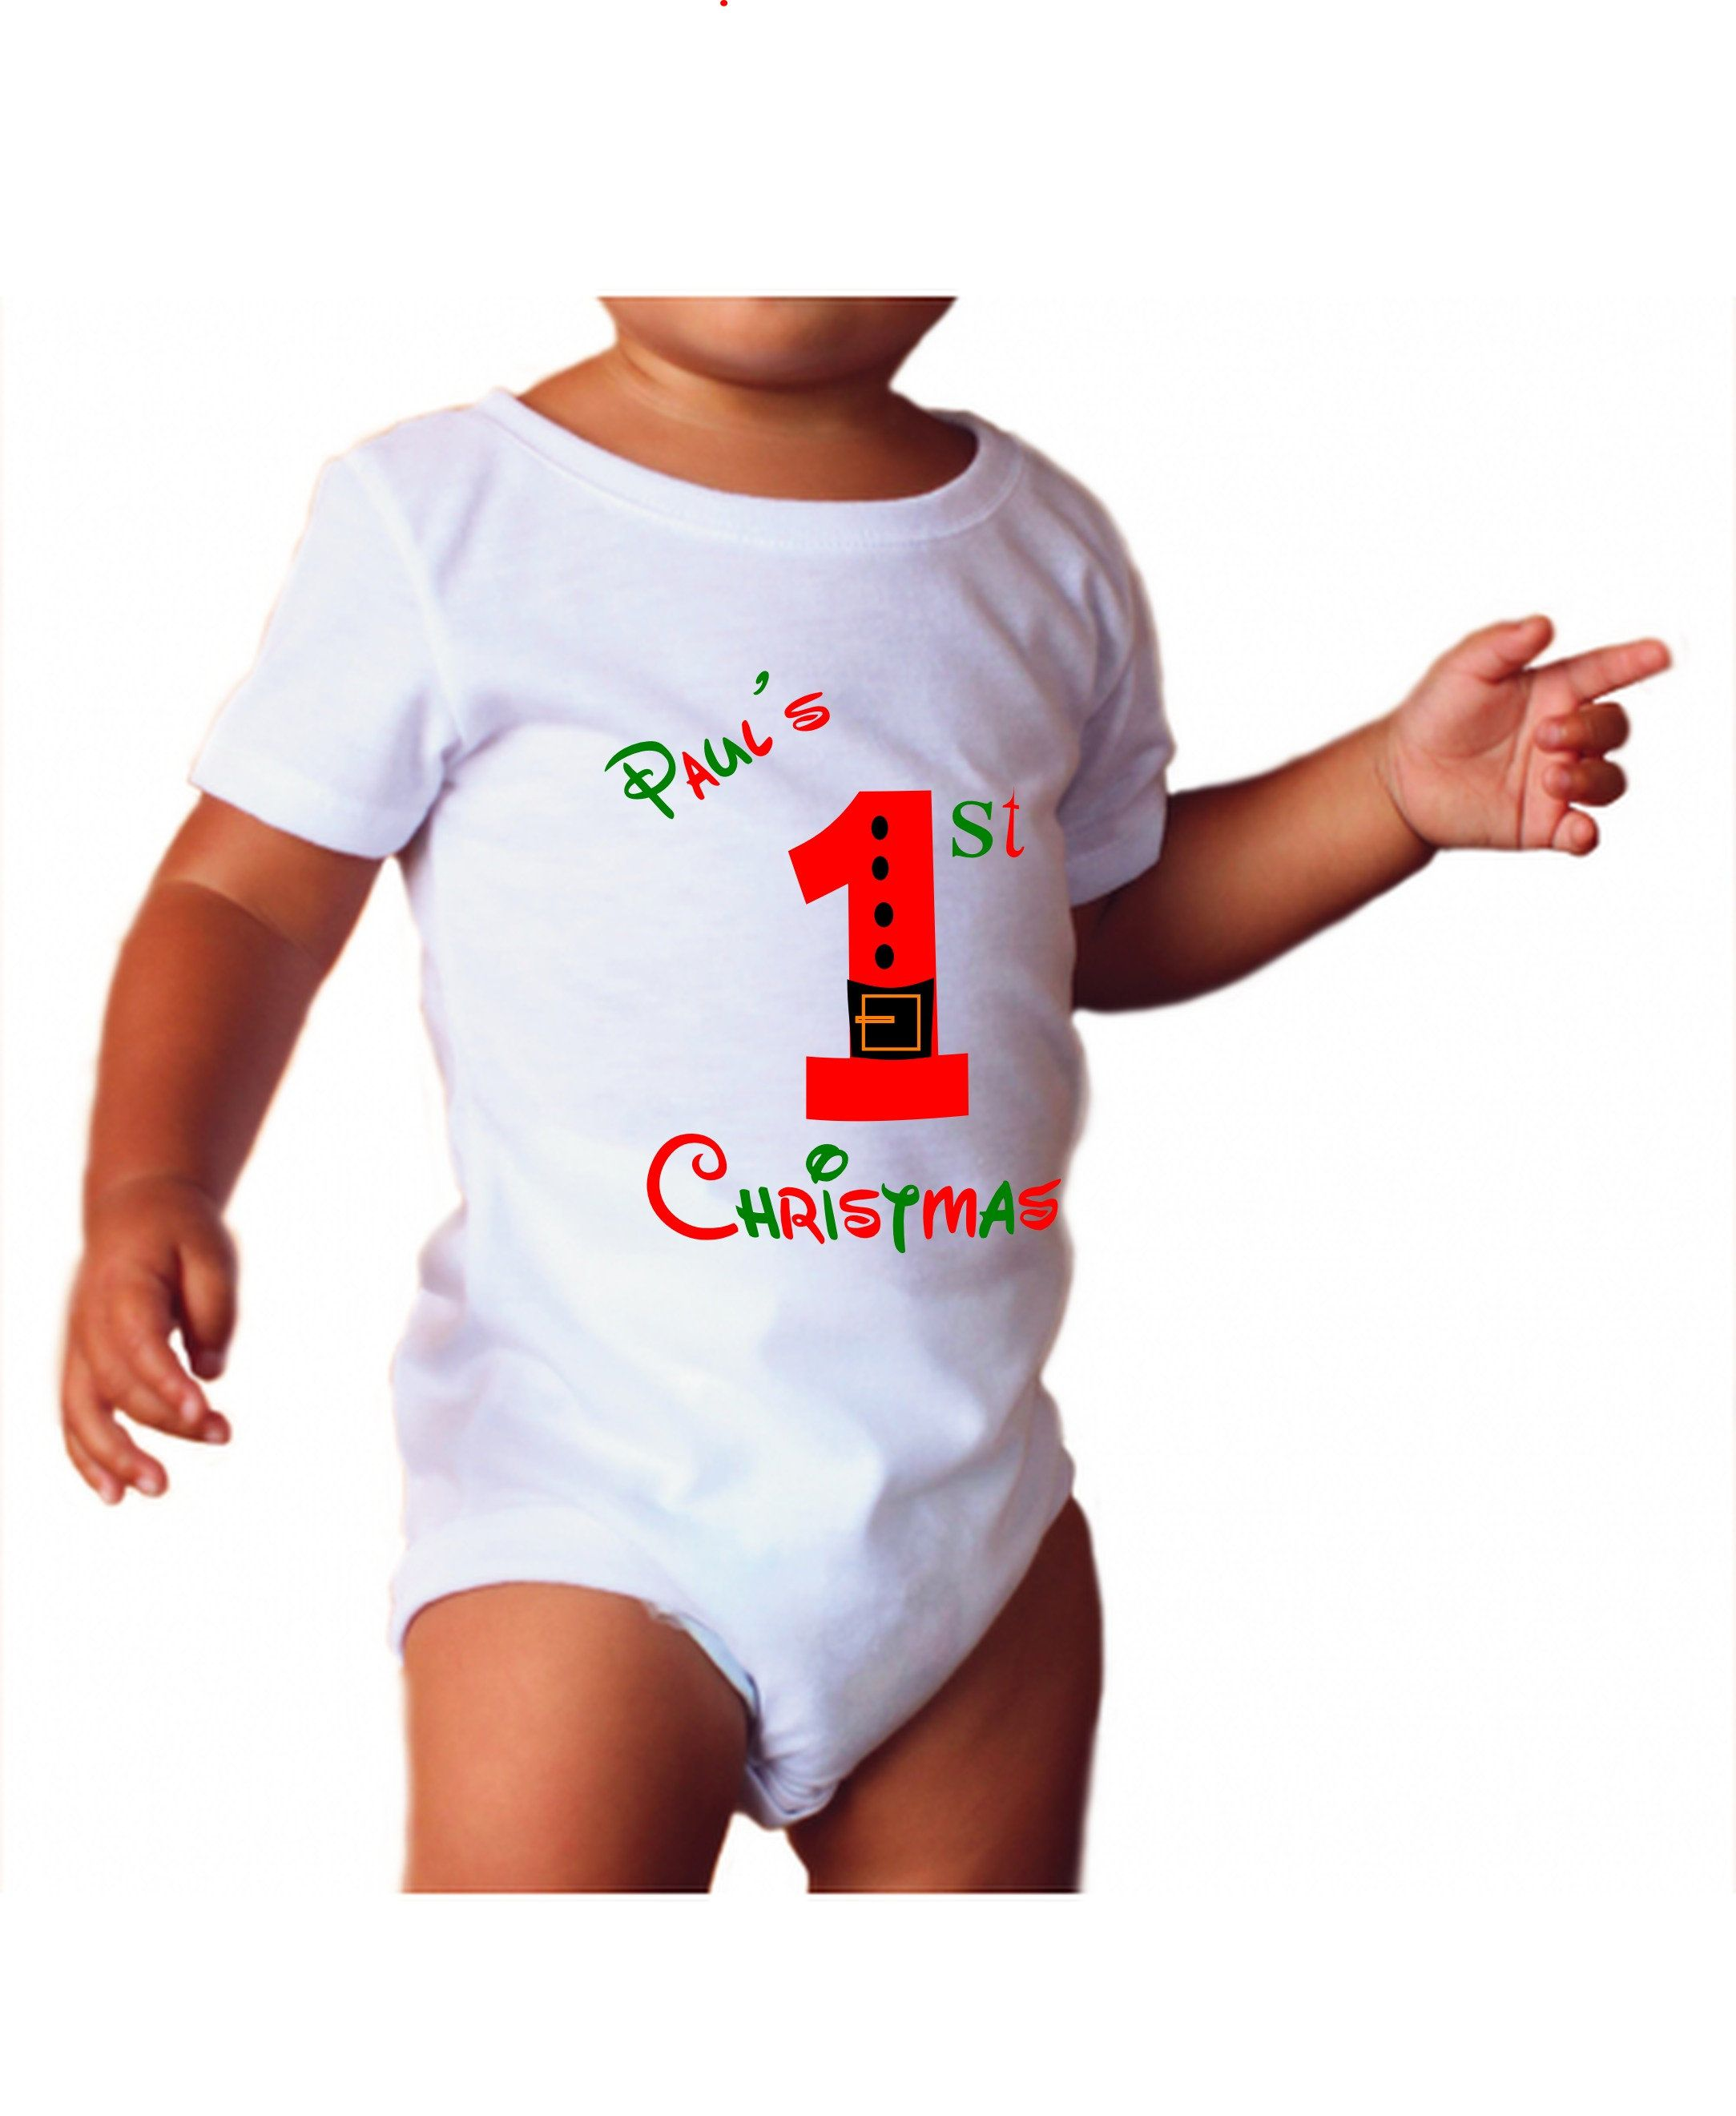 fd30aa3d Customised T Shirts · Baby's First Christmas Personalized Baby grow / Baby  Vest Unisex body suit Baby Clothes, Christmas